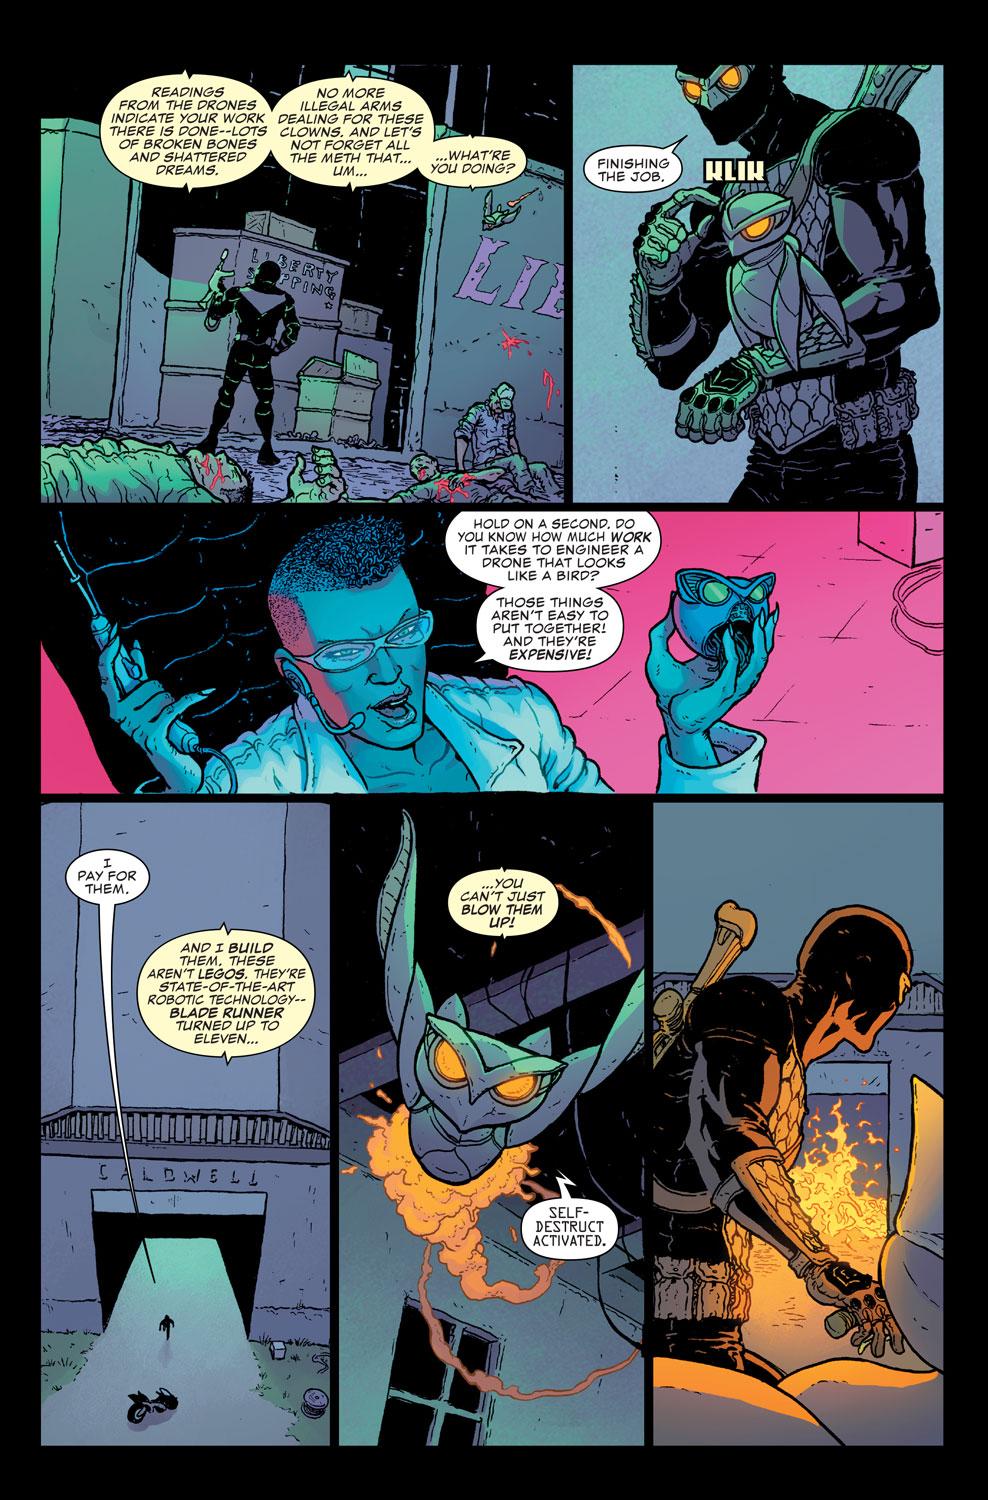 Nighthawk_1_Preview_4